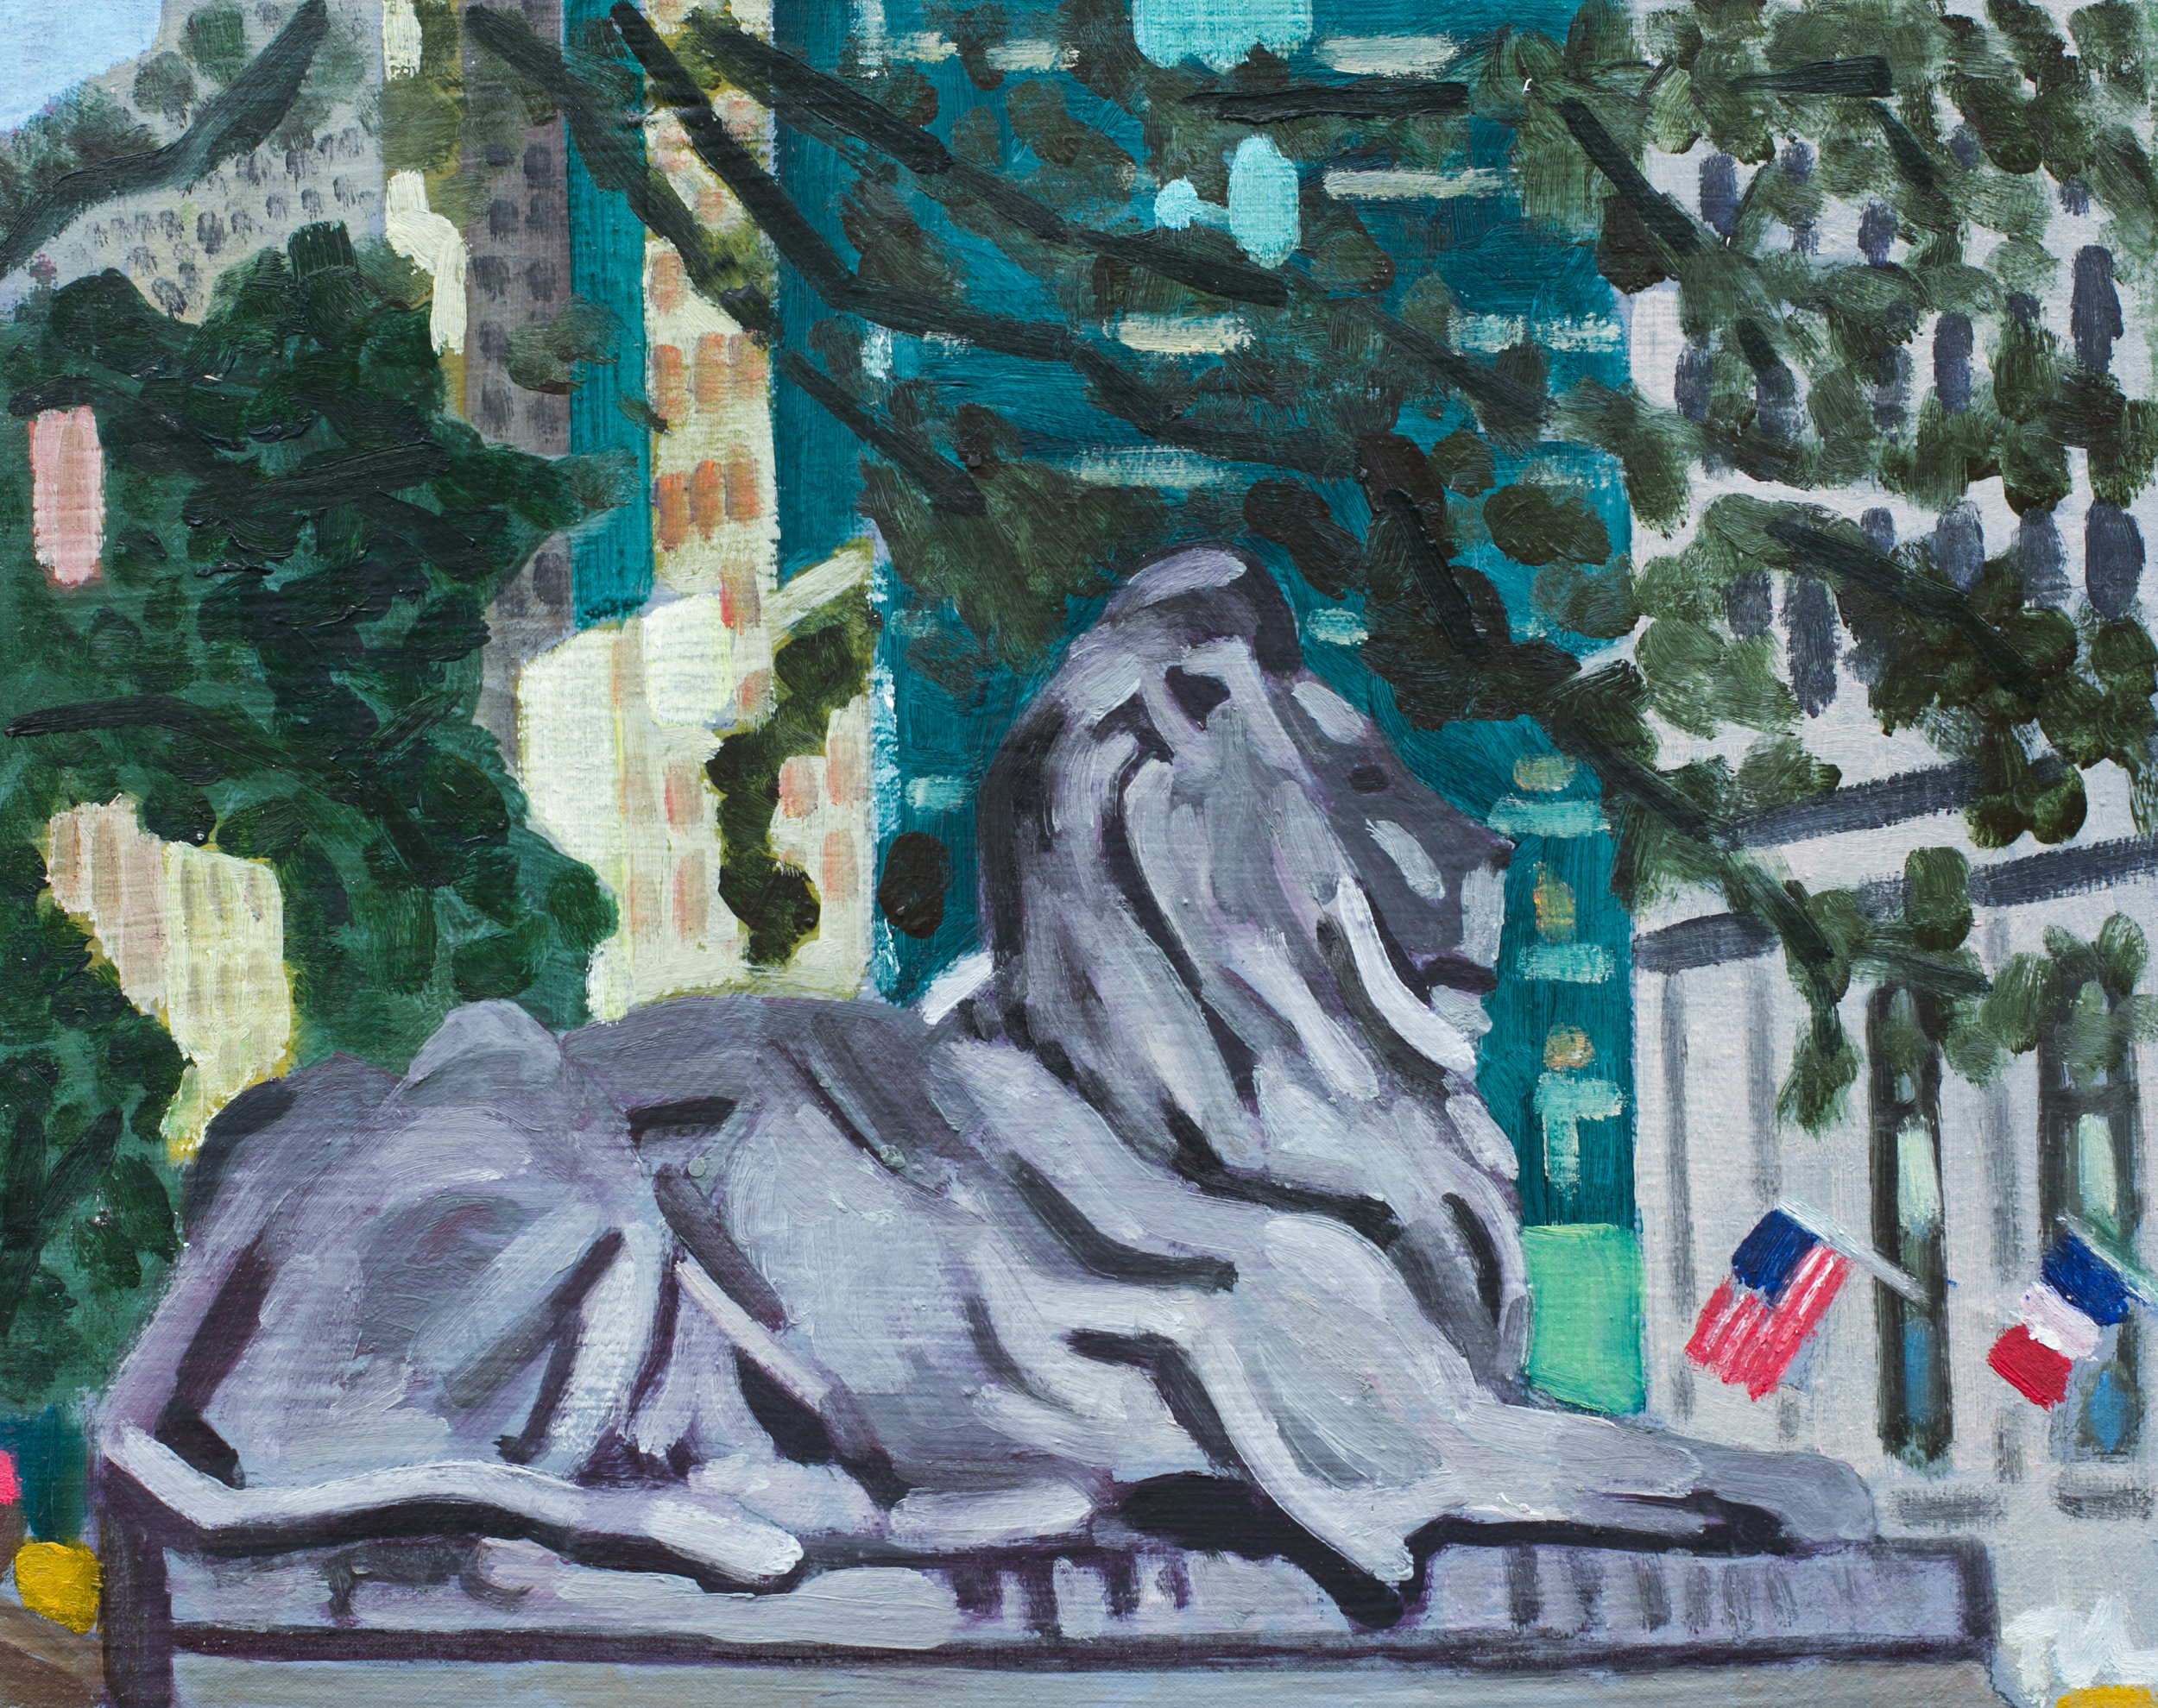 "Bryant Park #28 - July 15, 2016 - 9 1/2"" x 12"" - oil on panel"